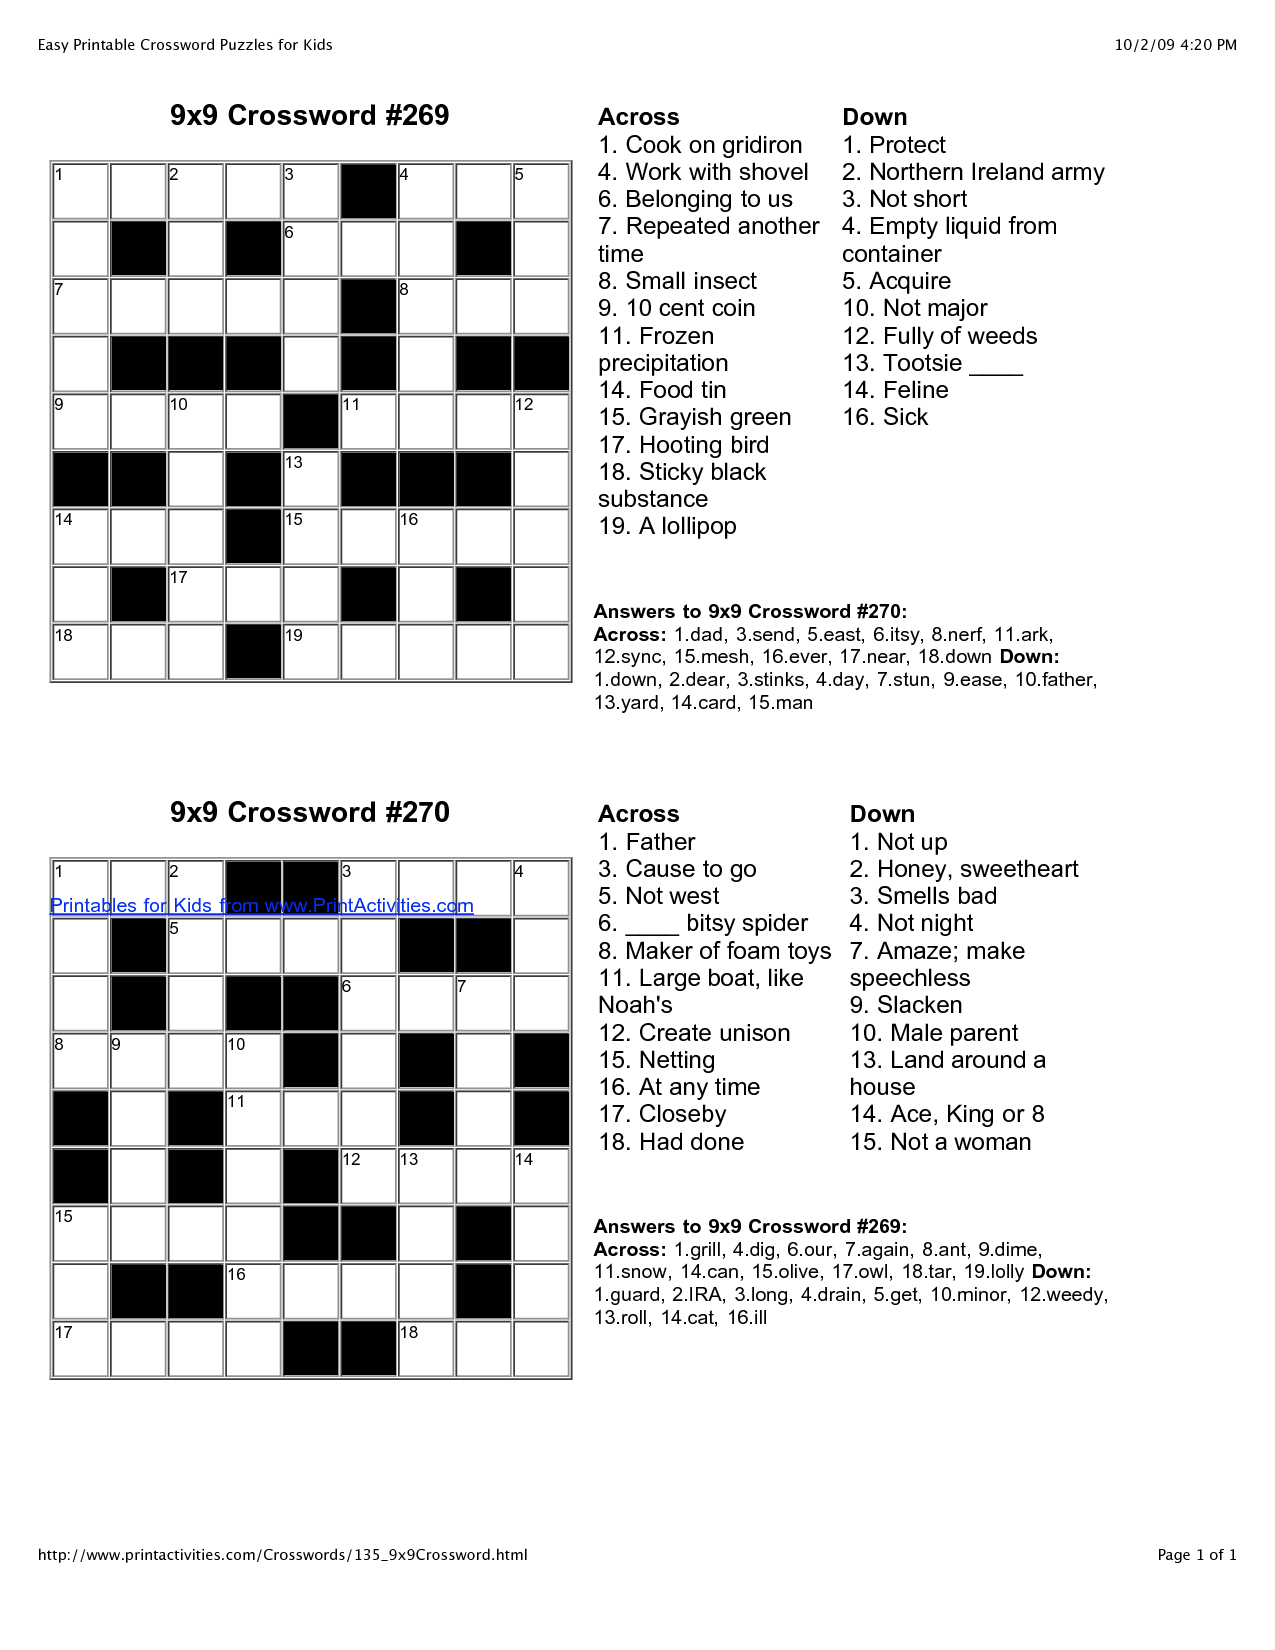 Easy Crossword Puzzles | I'm Going To Be An Slp! | Kids Crossword - Printable Crossword Puzzles For 8 Year Olds